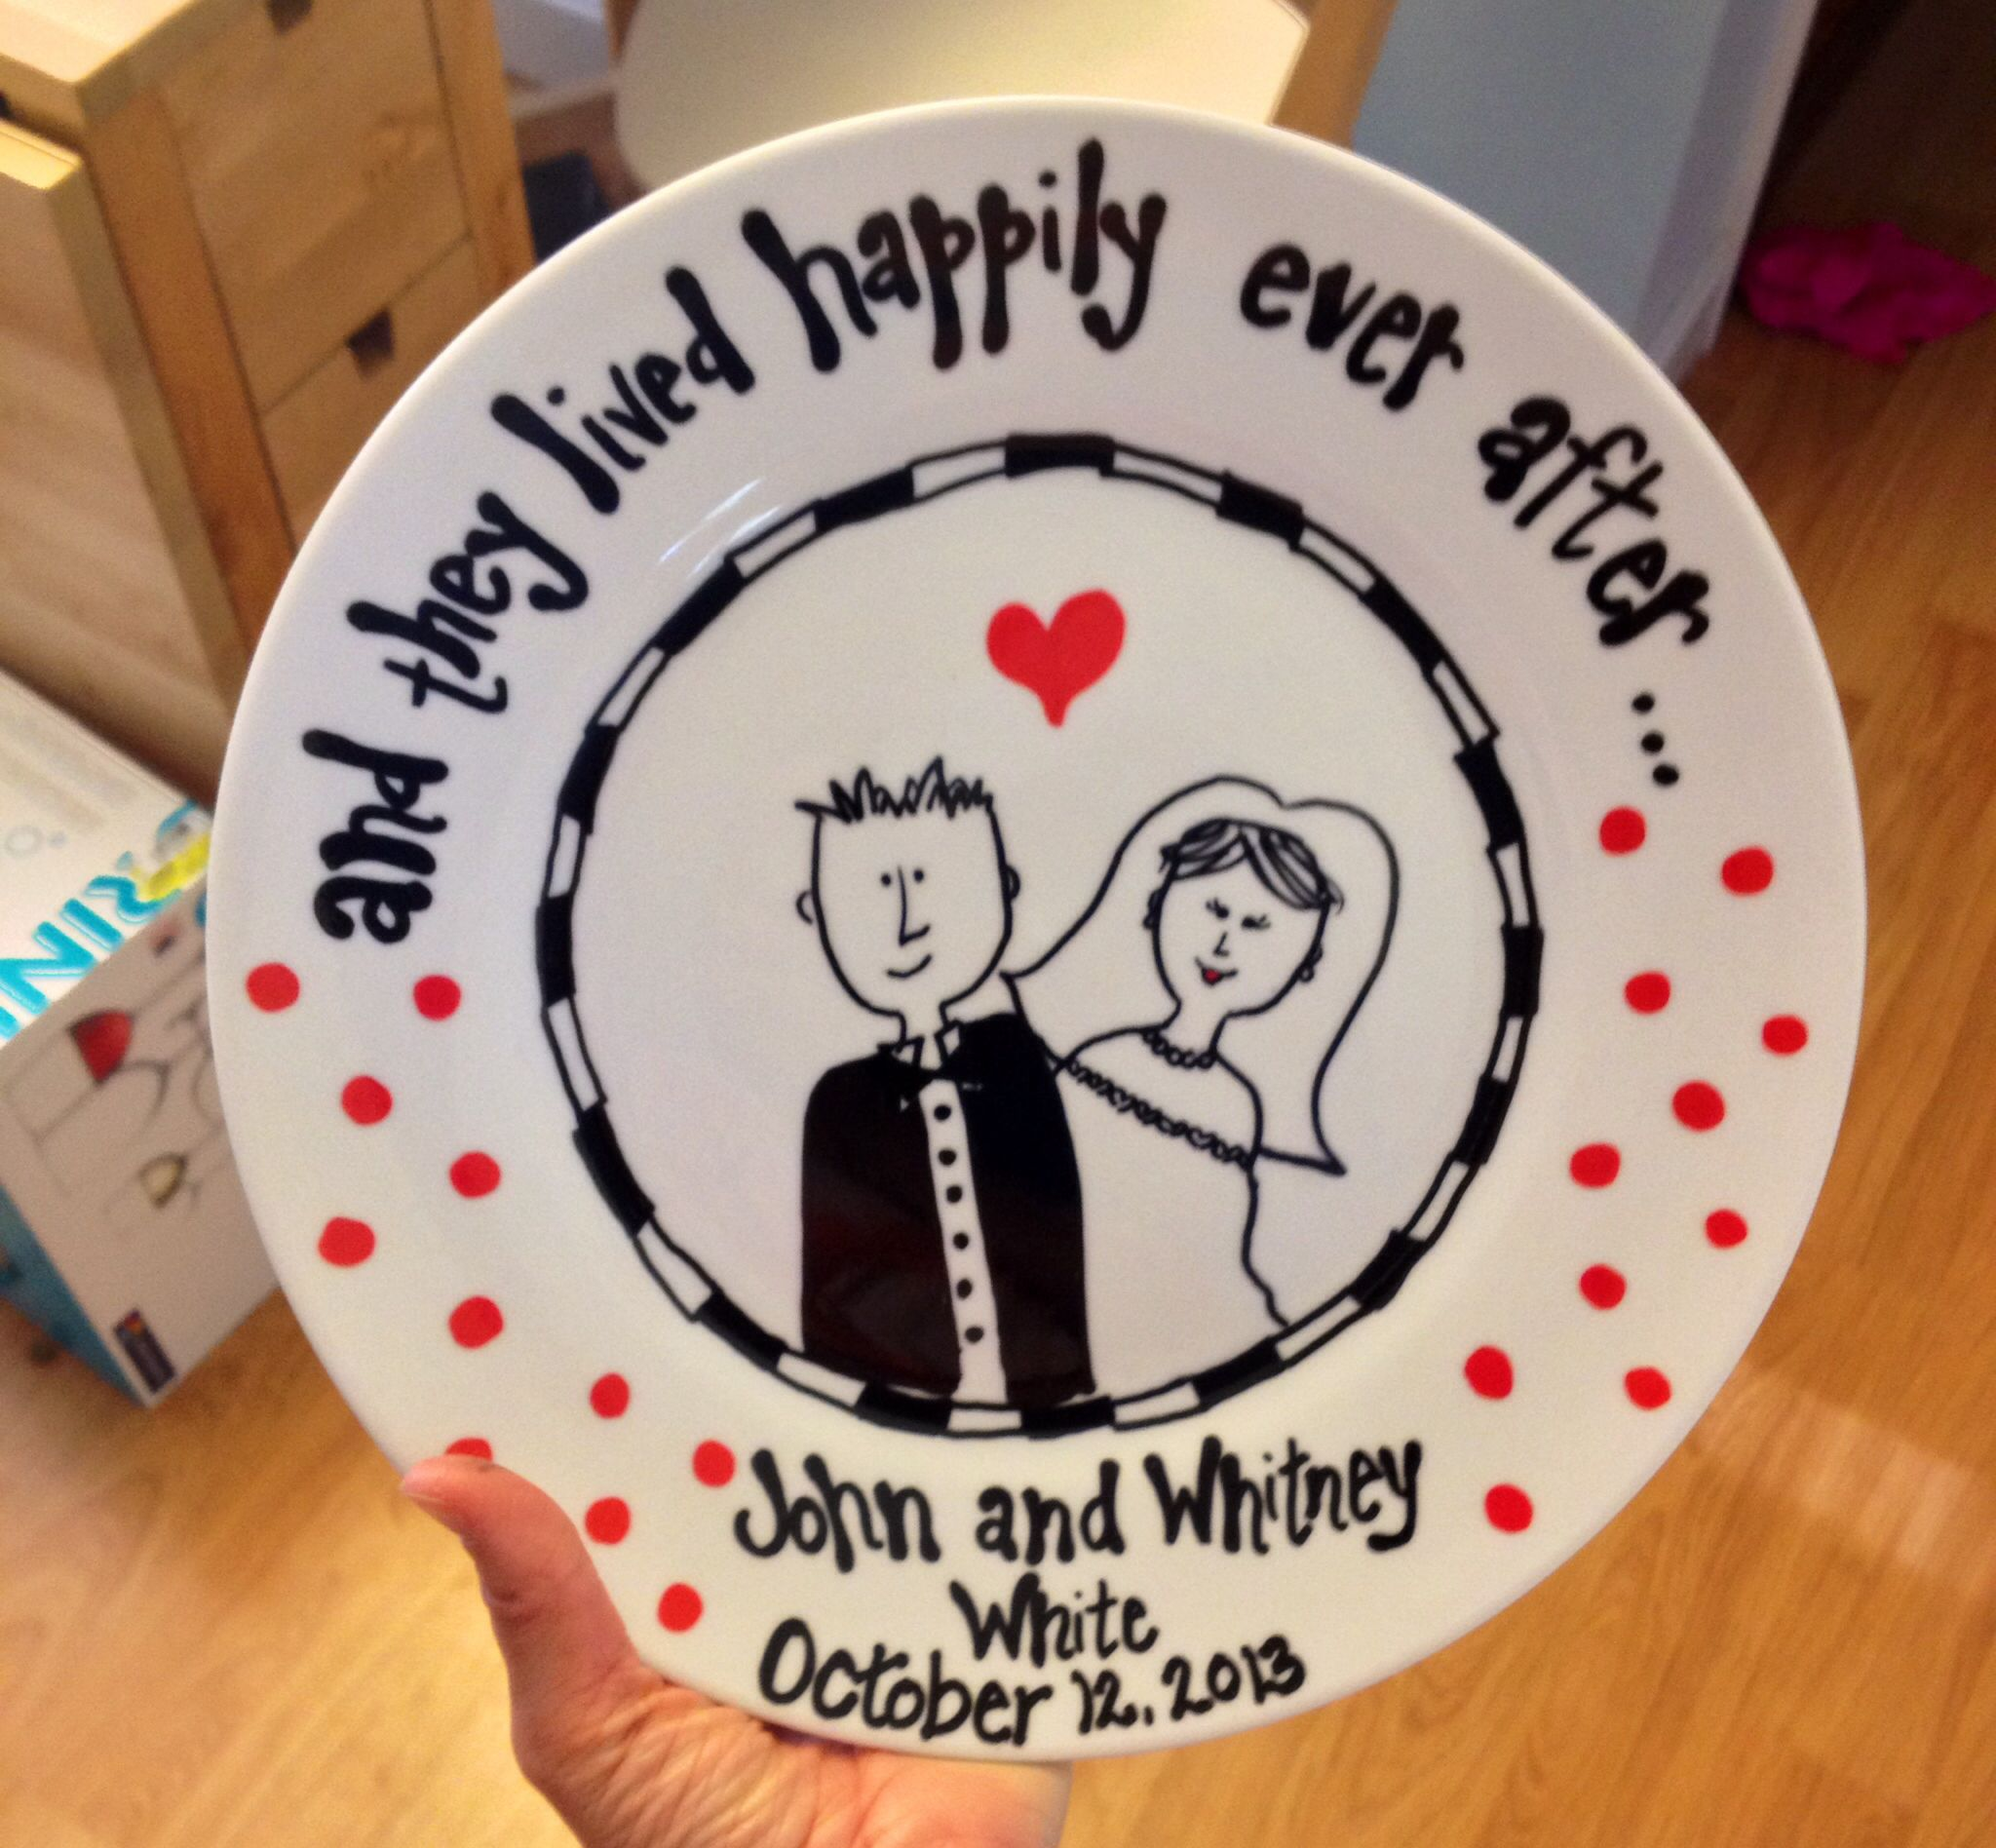 Find This Pin And More On Cute Ideas Weddings Baby Showers Etc Wedding Gift Bride Groom Plate